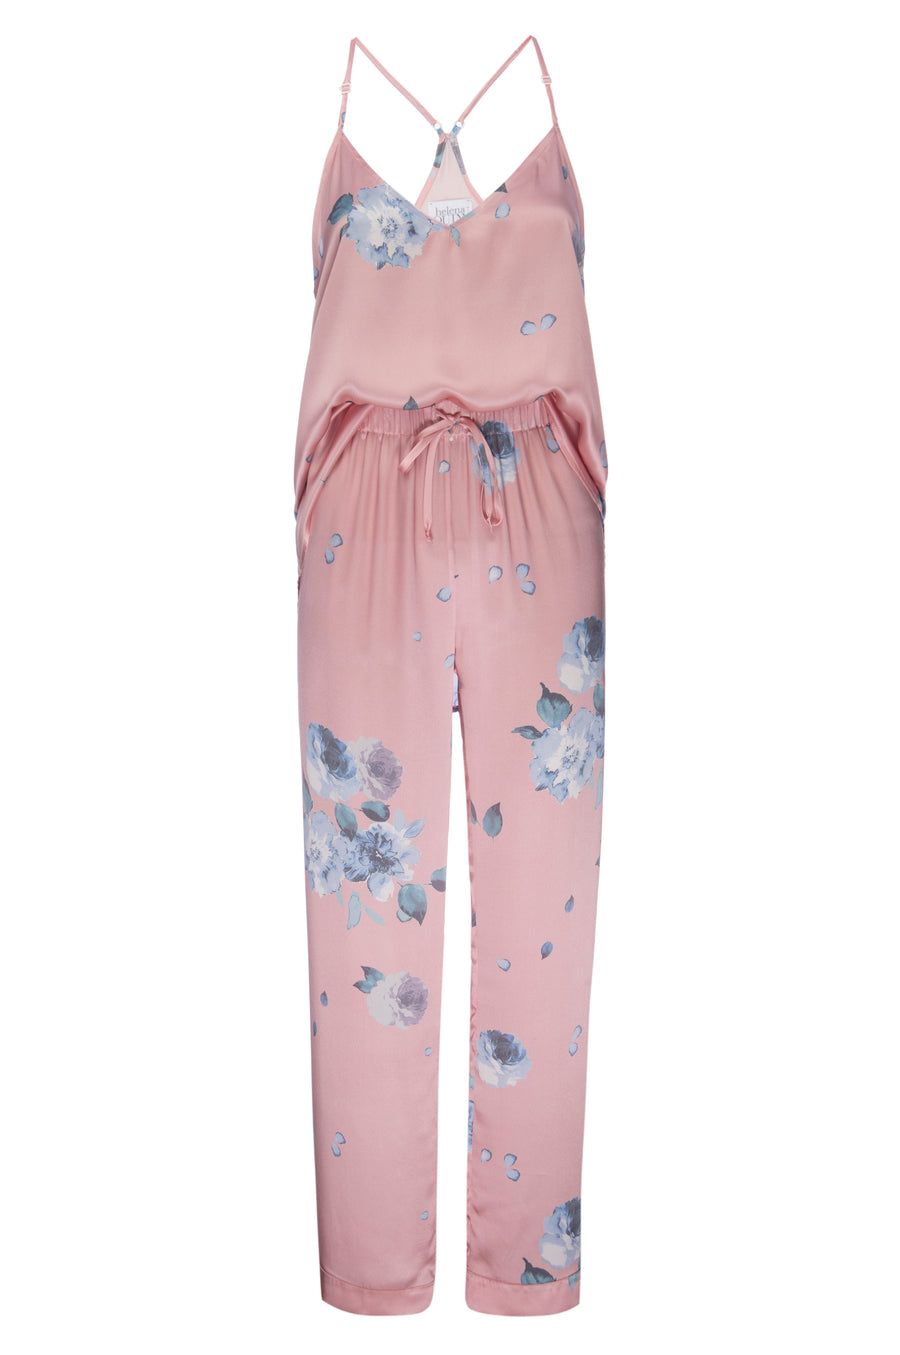 Silk Charmeuse Tank + Pant Set: Rose Gold Floral Print